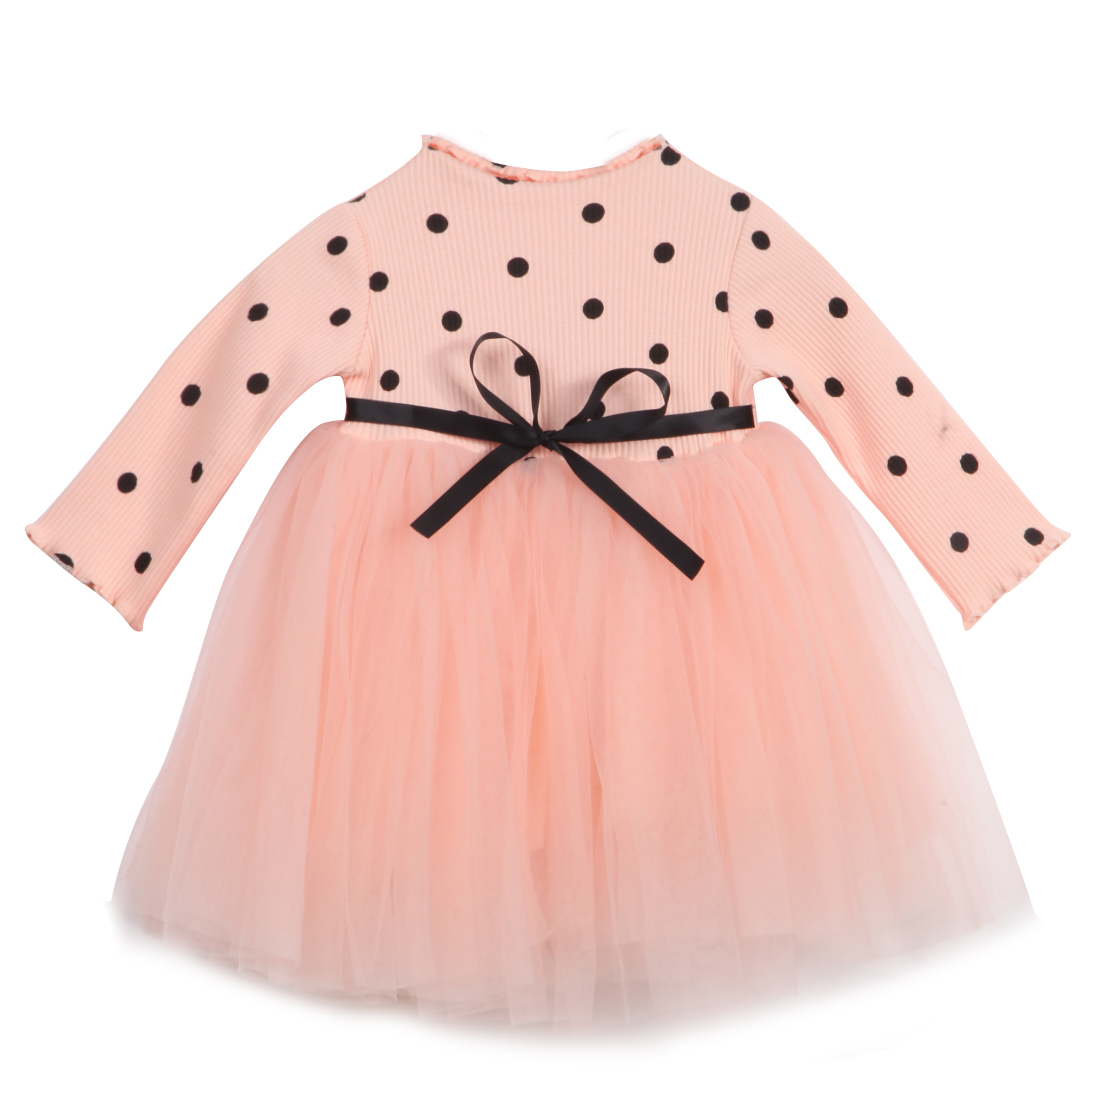 Cute Newborn Kids Baby Girl Clothing Dresses Tutu Cute Ball Summer Polka Dot Lace Tutu Dress Girls Clothes цена